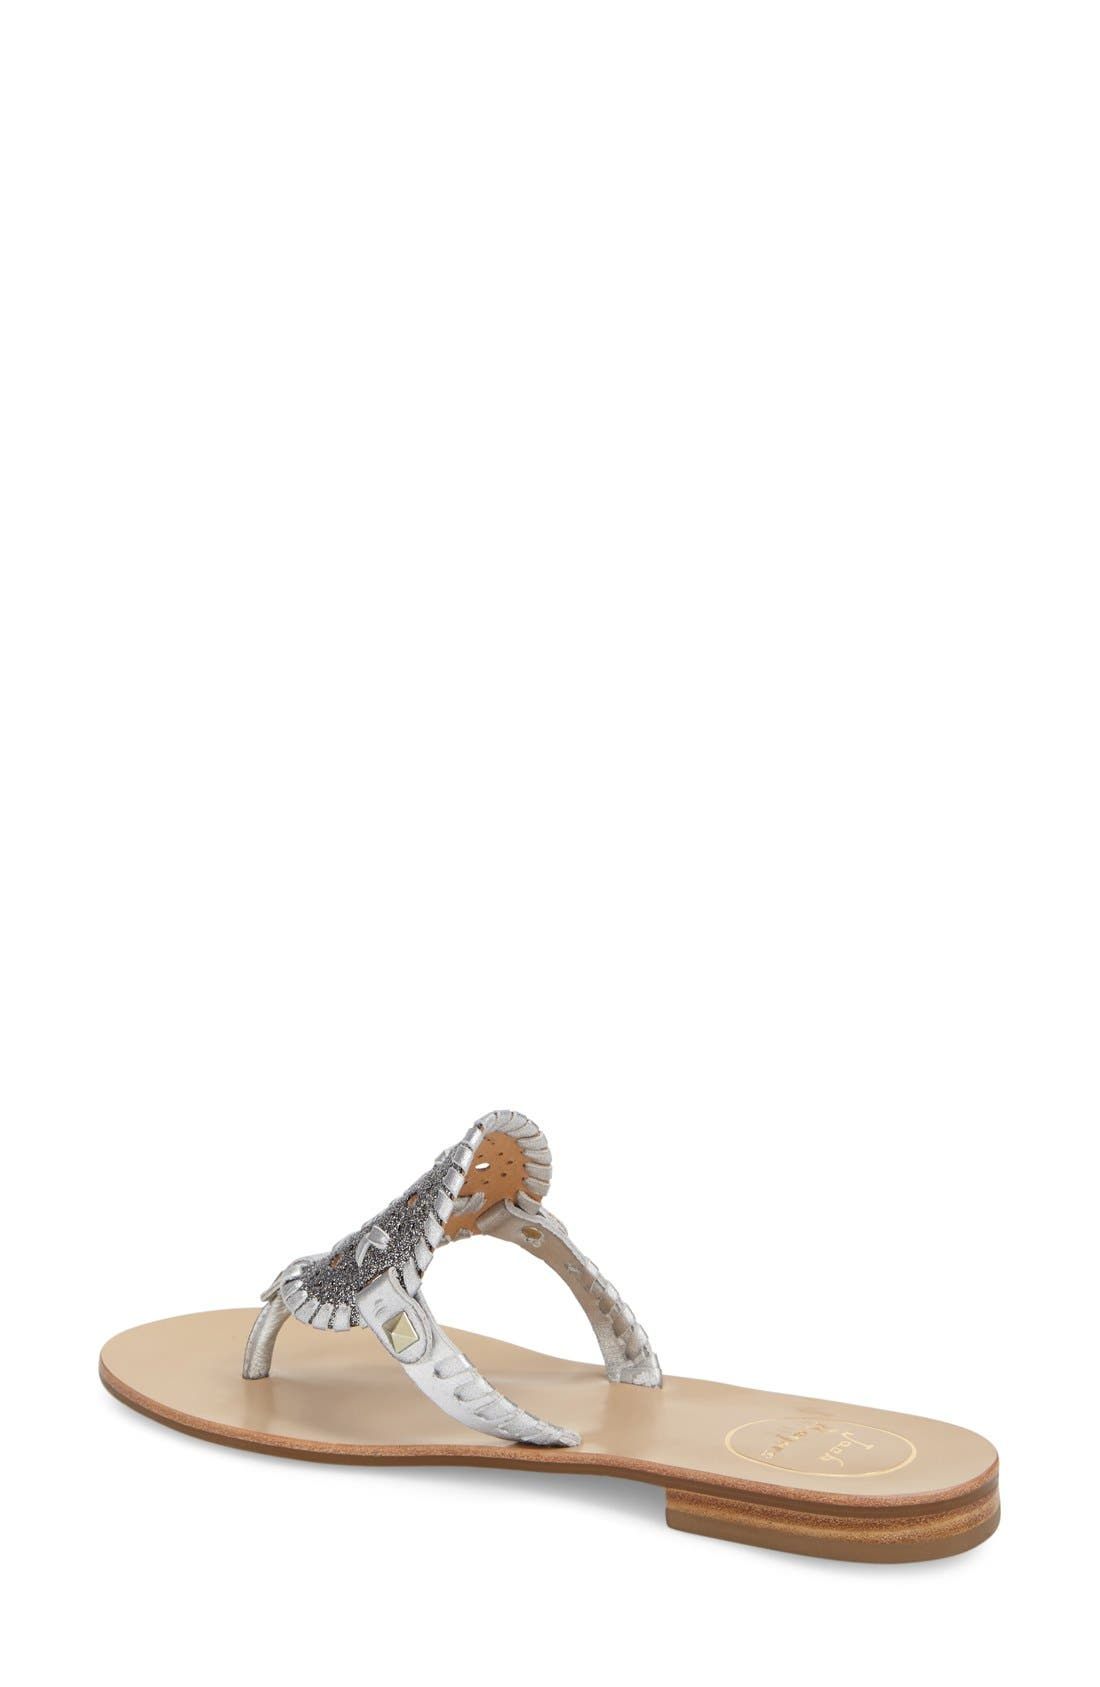 'Georgica' Sandal,                             Alternate thumbnail 2, color,                             032